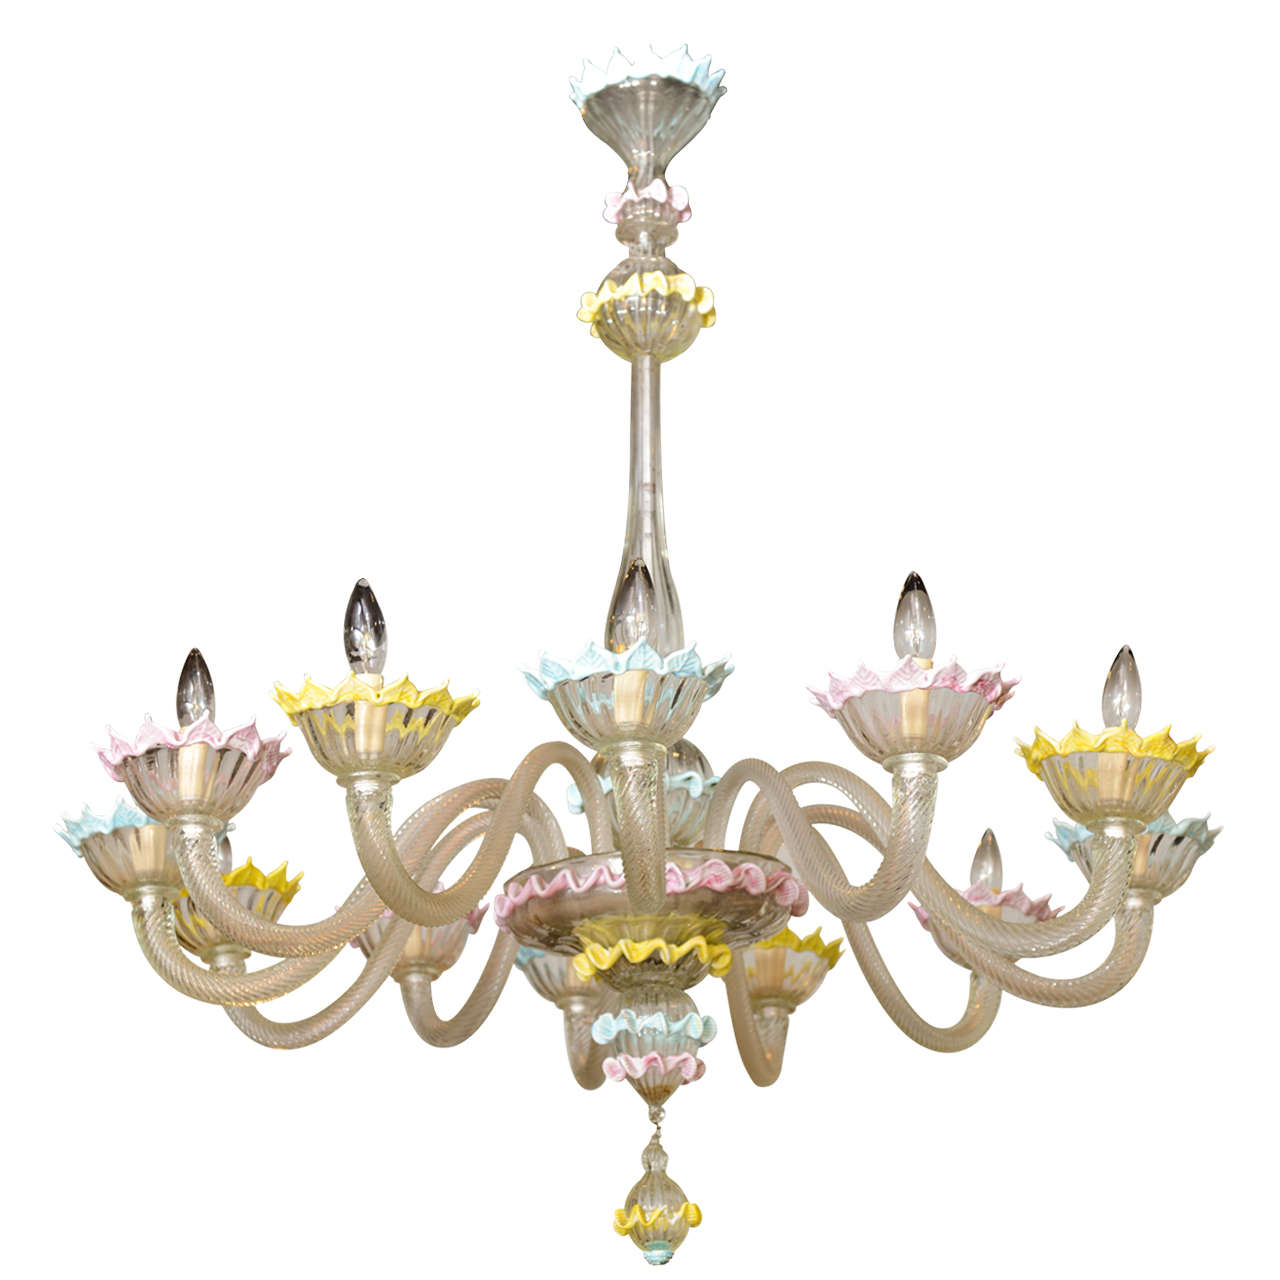 Fine Pair of Barovier & Toso Clear and Colored Glass 12-Light Chandeliers, 1940s